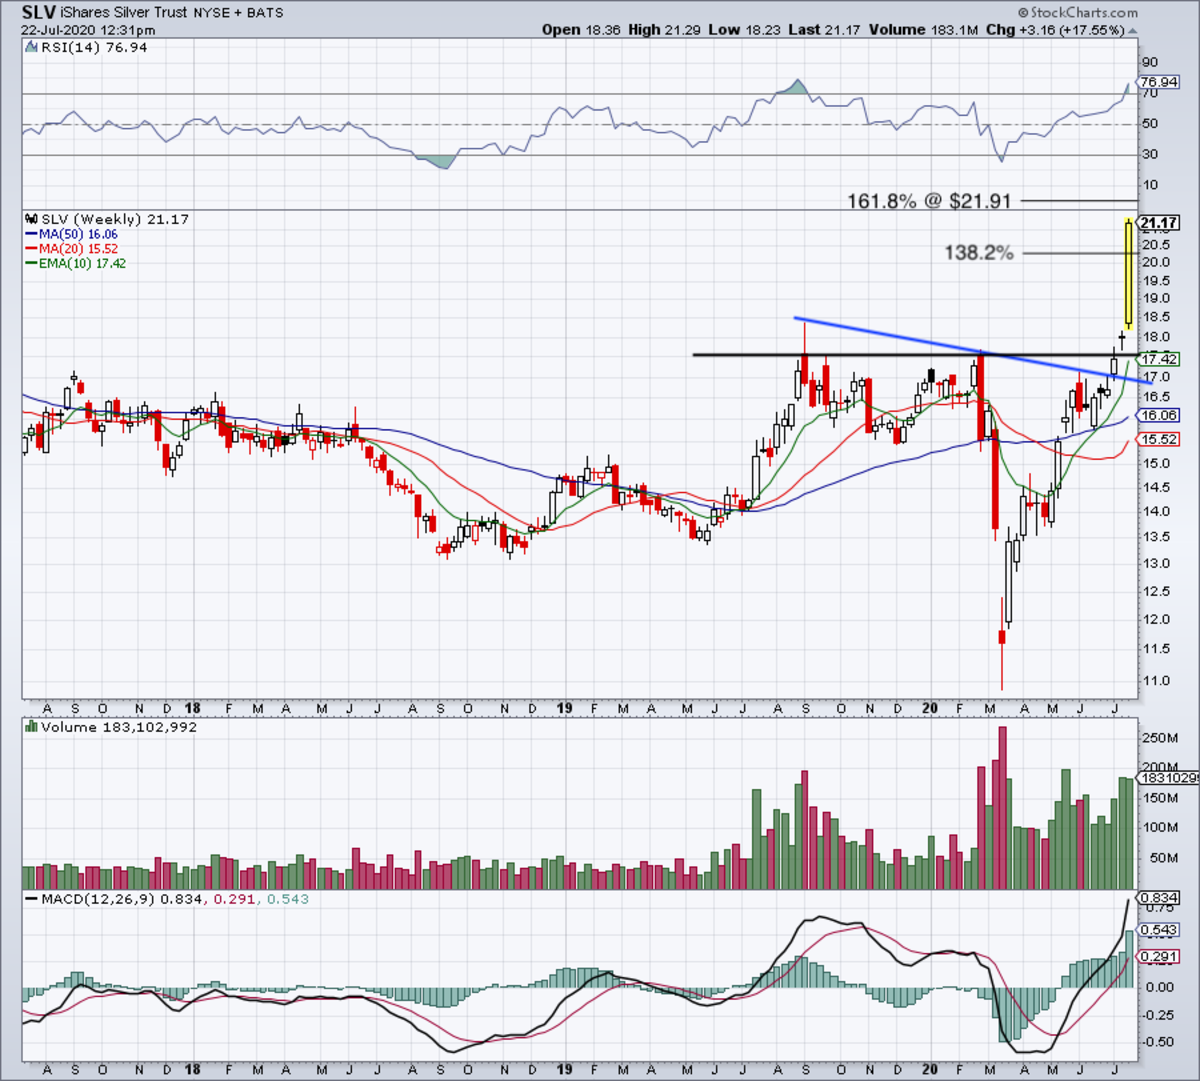 Weekly chart of the SLV ETF.